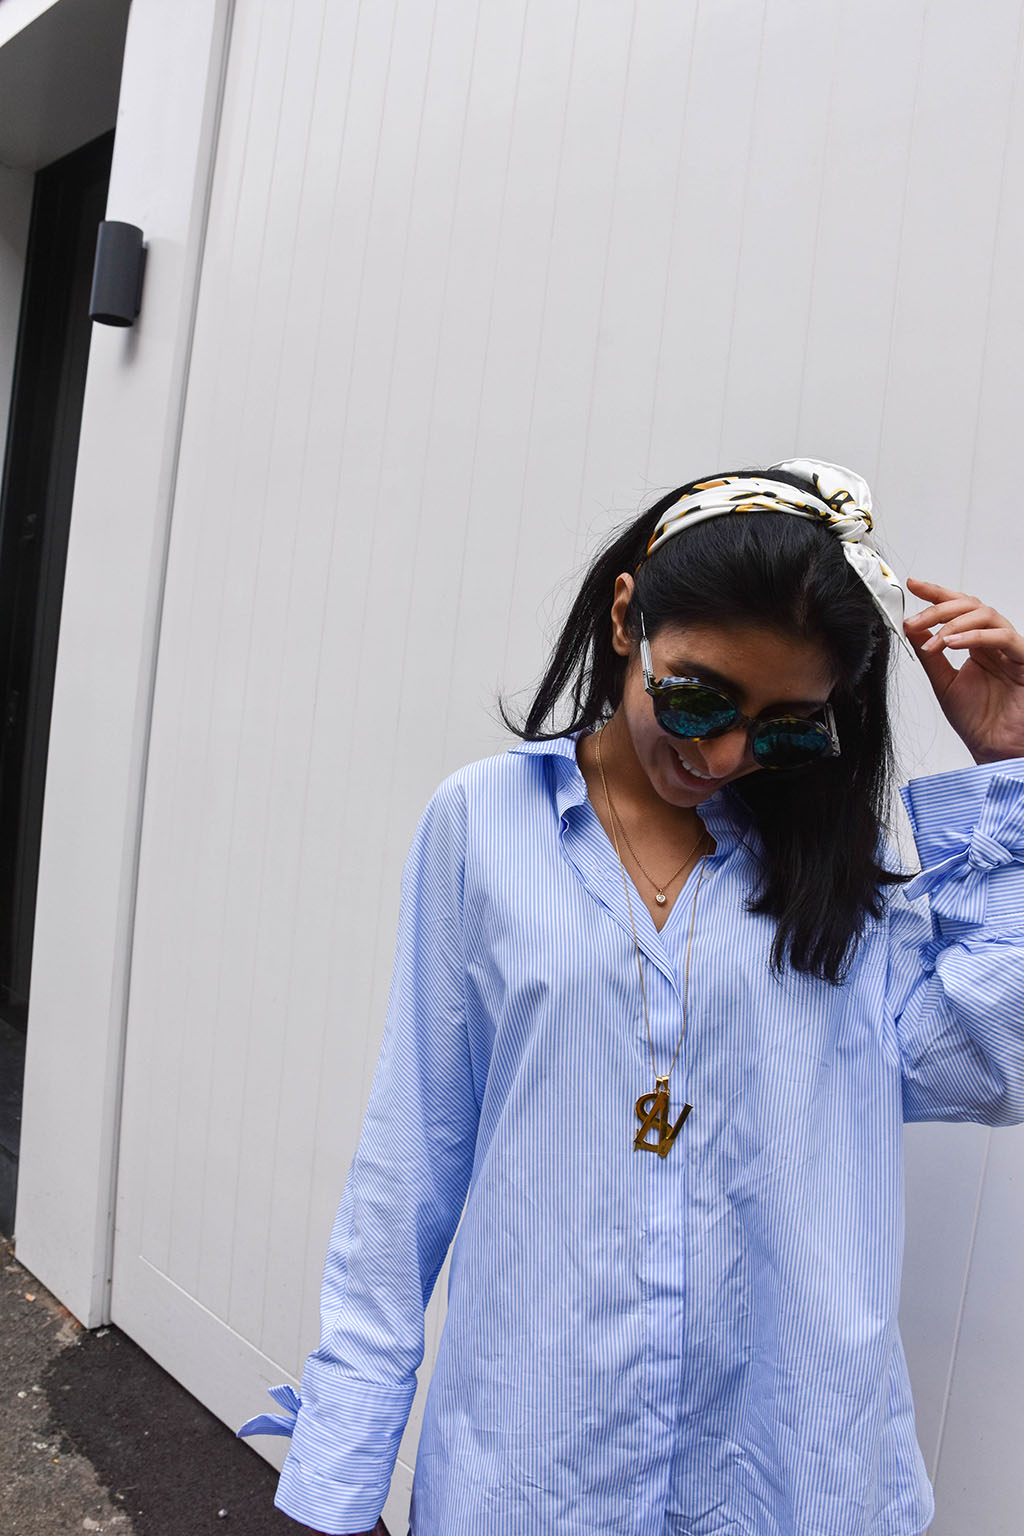 Fashion blogger Shloka Narang showcases how to use a scarf as a headband in the latest bandana hairstyle trend